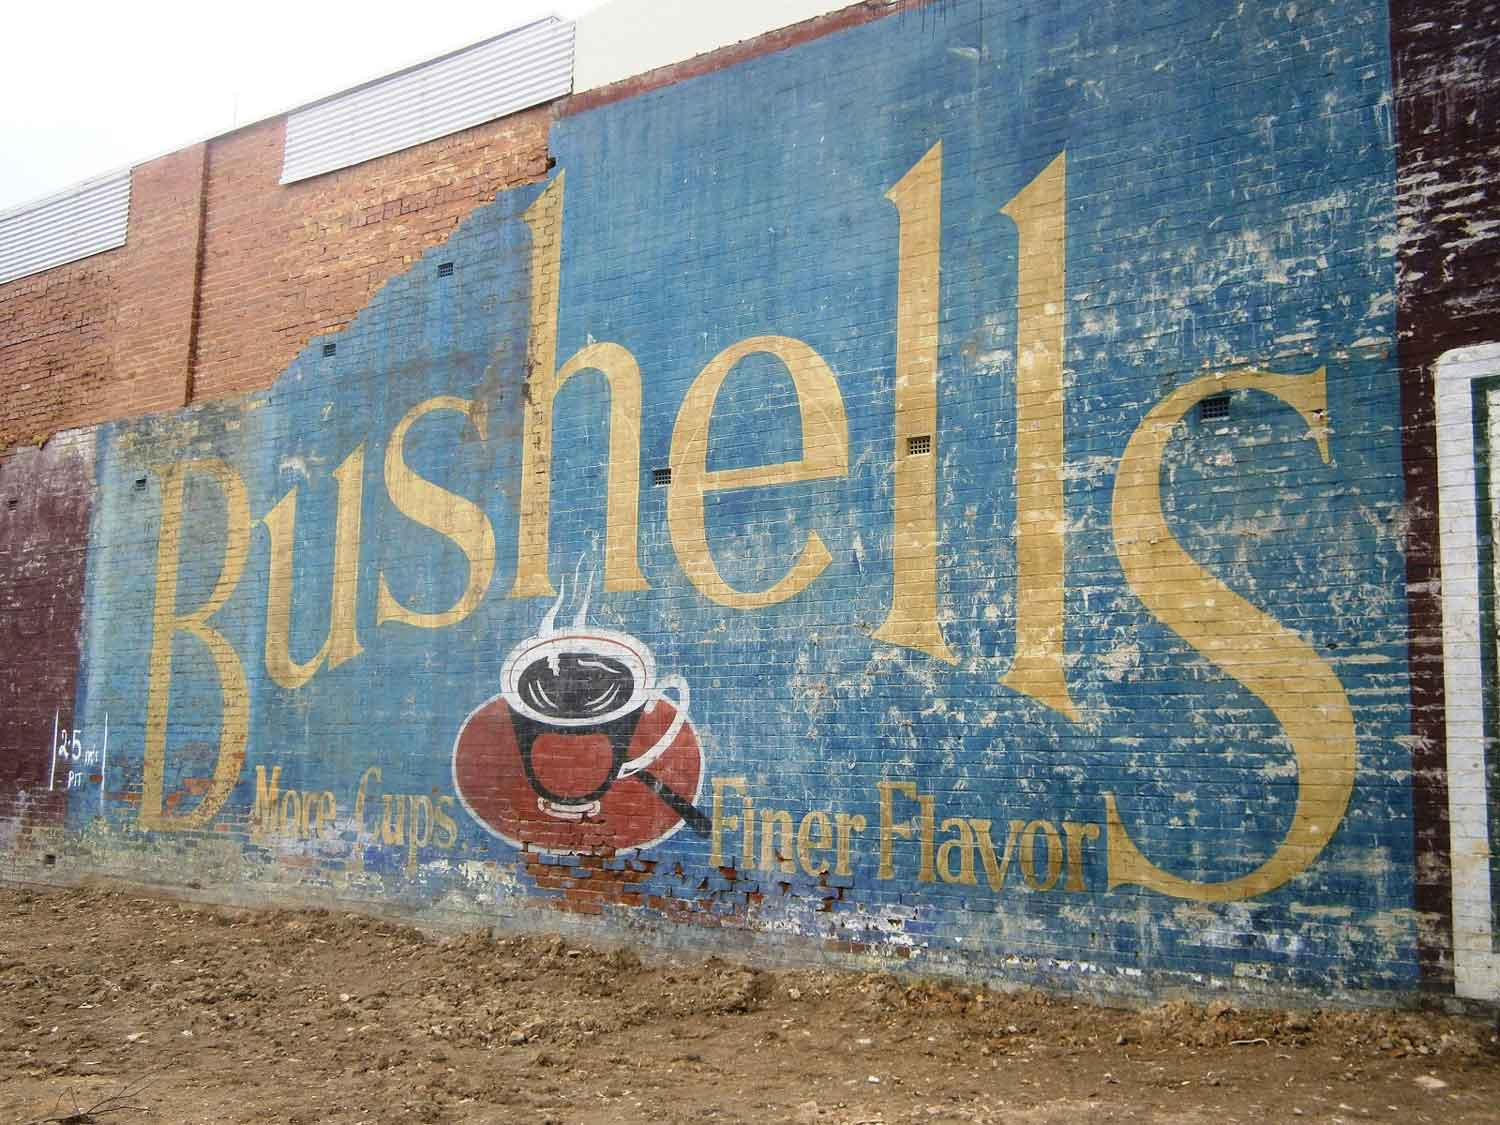 Vintage Bushells ad in the village of Surrey Hills, Victoria - taken by Our Country Life